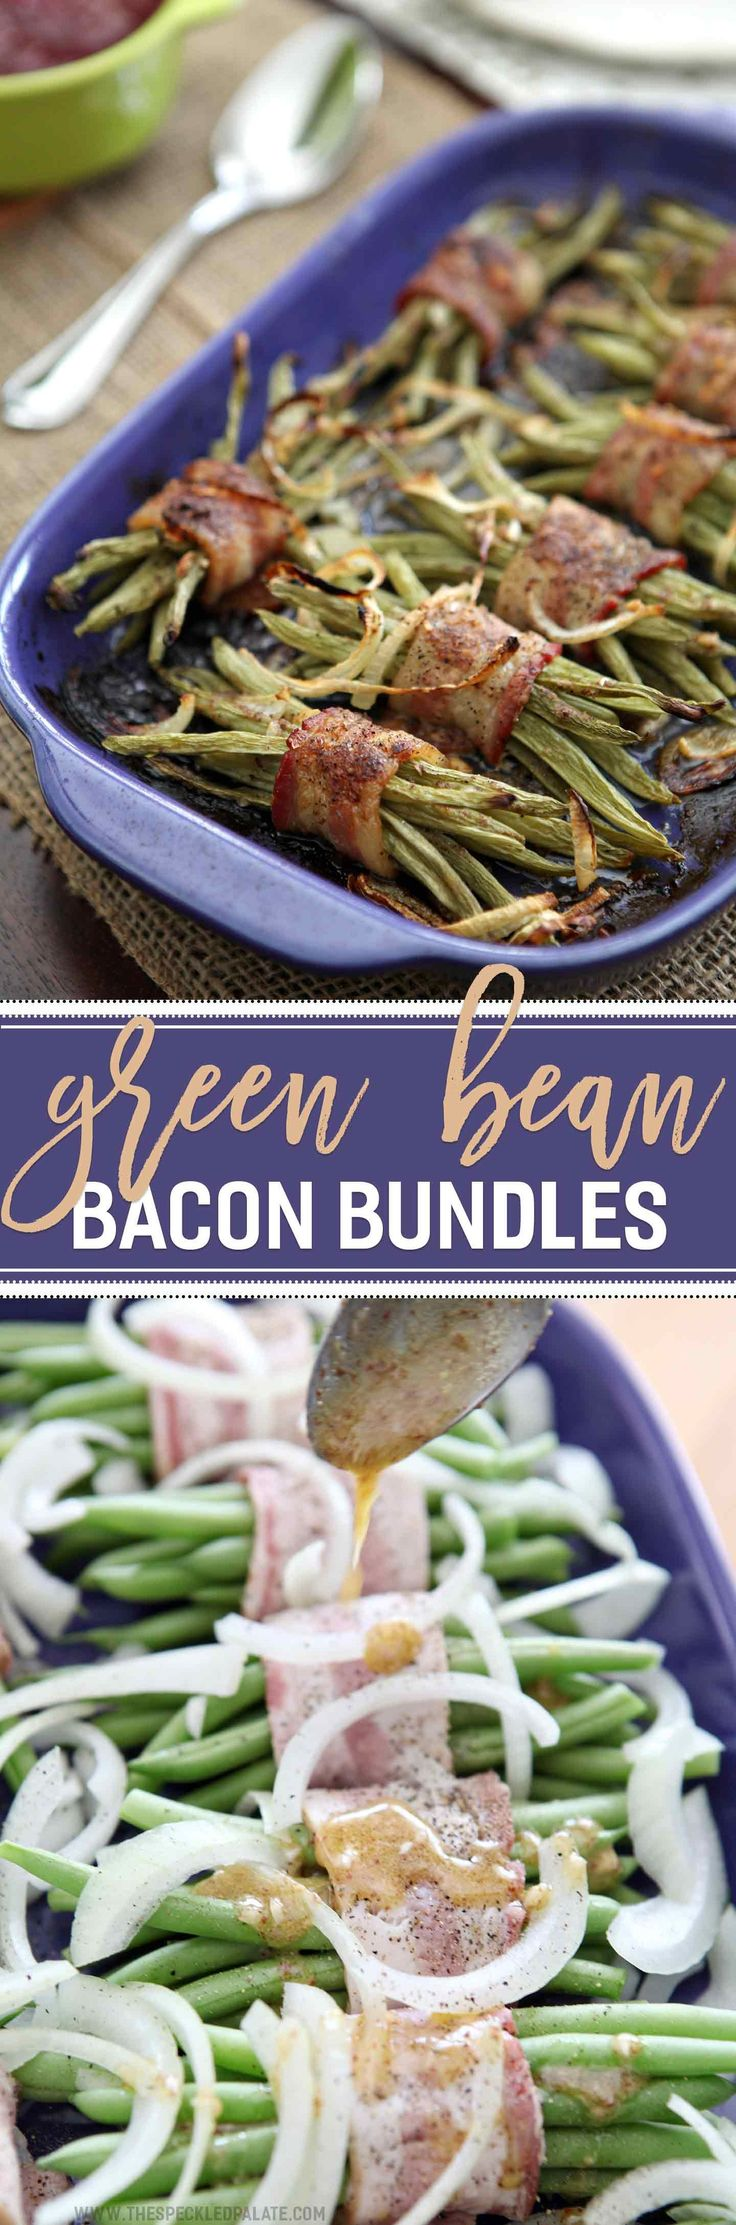 Green Bean Bacon Bundles make the BEST fresh holiday side dish! Wrap small bundles of fresh green beans in strip of bacon. Whip up a homemade mustard vinaigrette, then brush the green bean bundles with the vinaigrette. Bake this side dish until the bacon has cooked through. These Green Bean Bacon Bundles are sure to be a winner at this year's Thanksgiving or Christmas table!